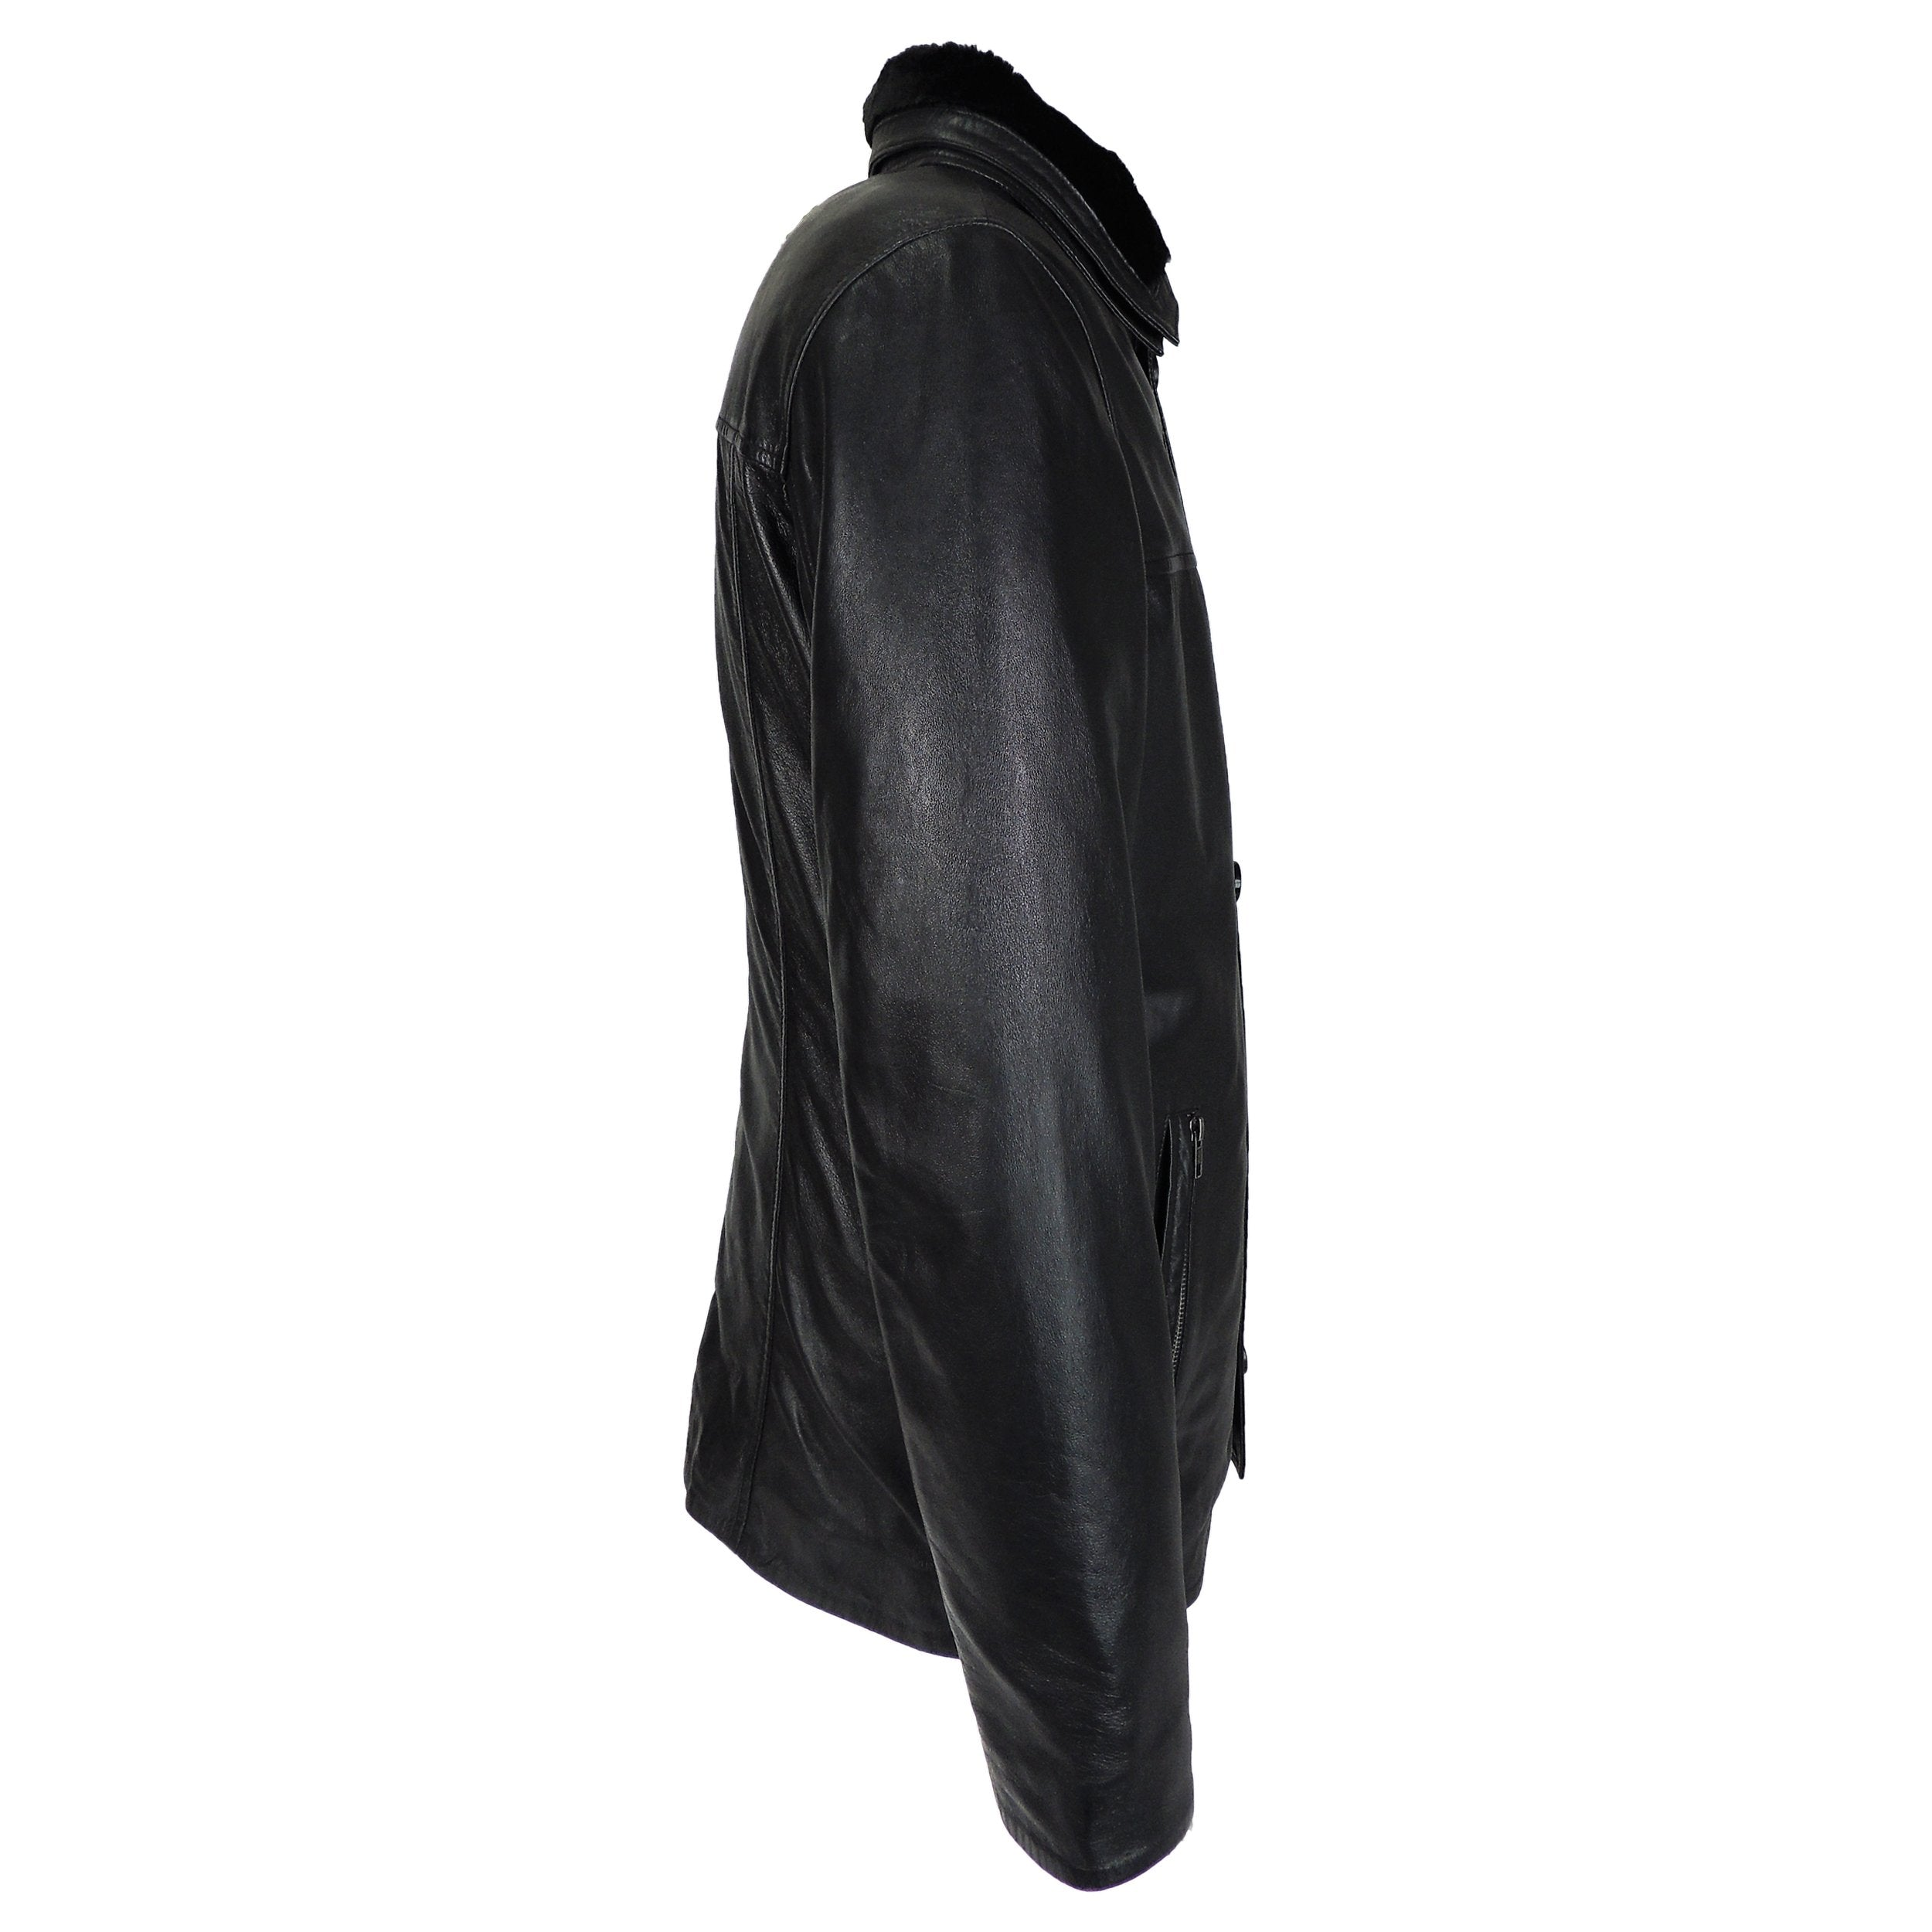 Mens Leather Blazer - Ahsa Mens Leather Coat - Discounted!